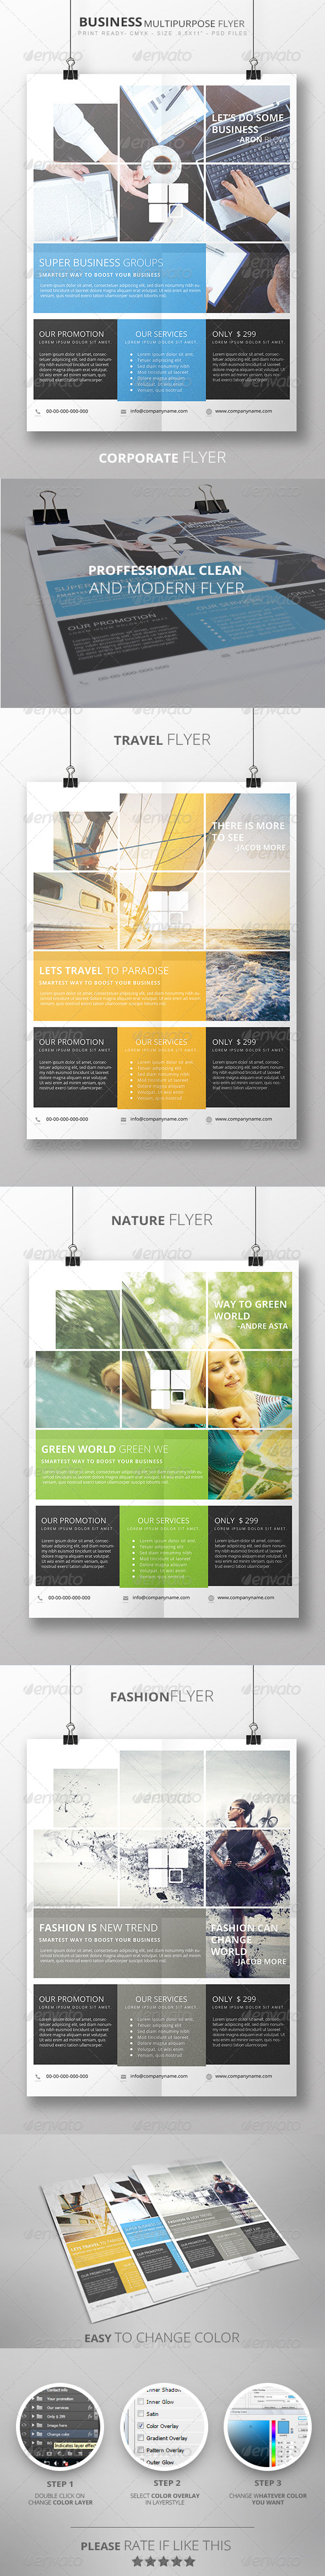 GraphicRiver Business Multipurpose Flyer 7793482